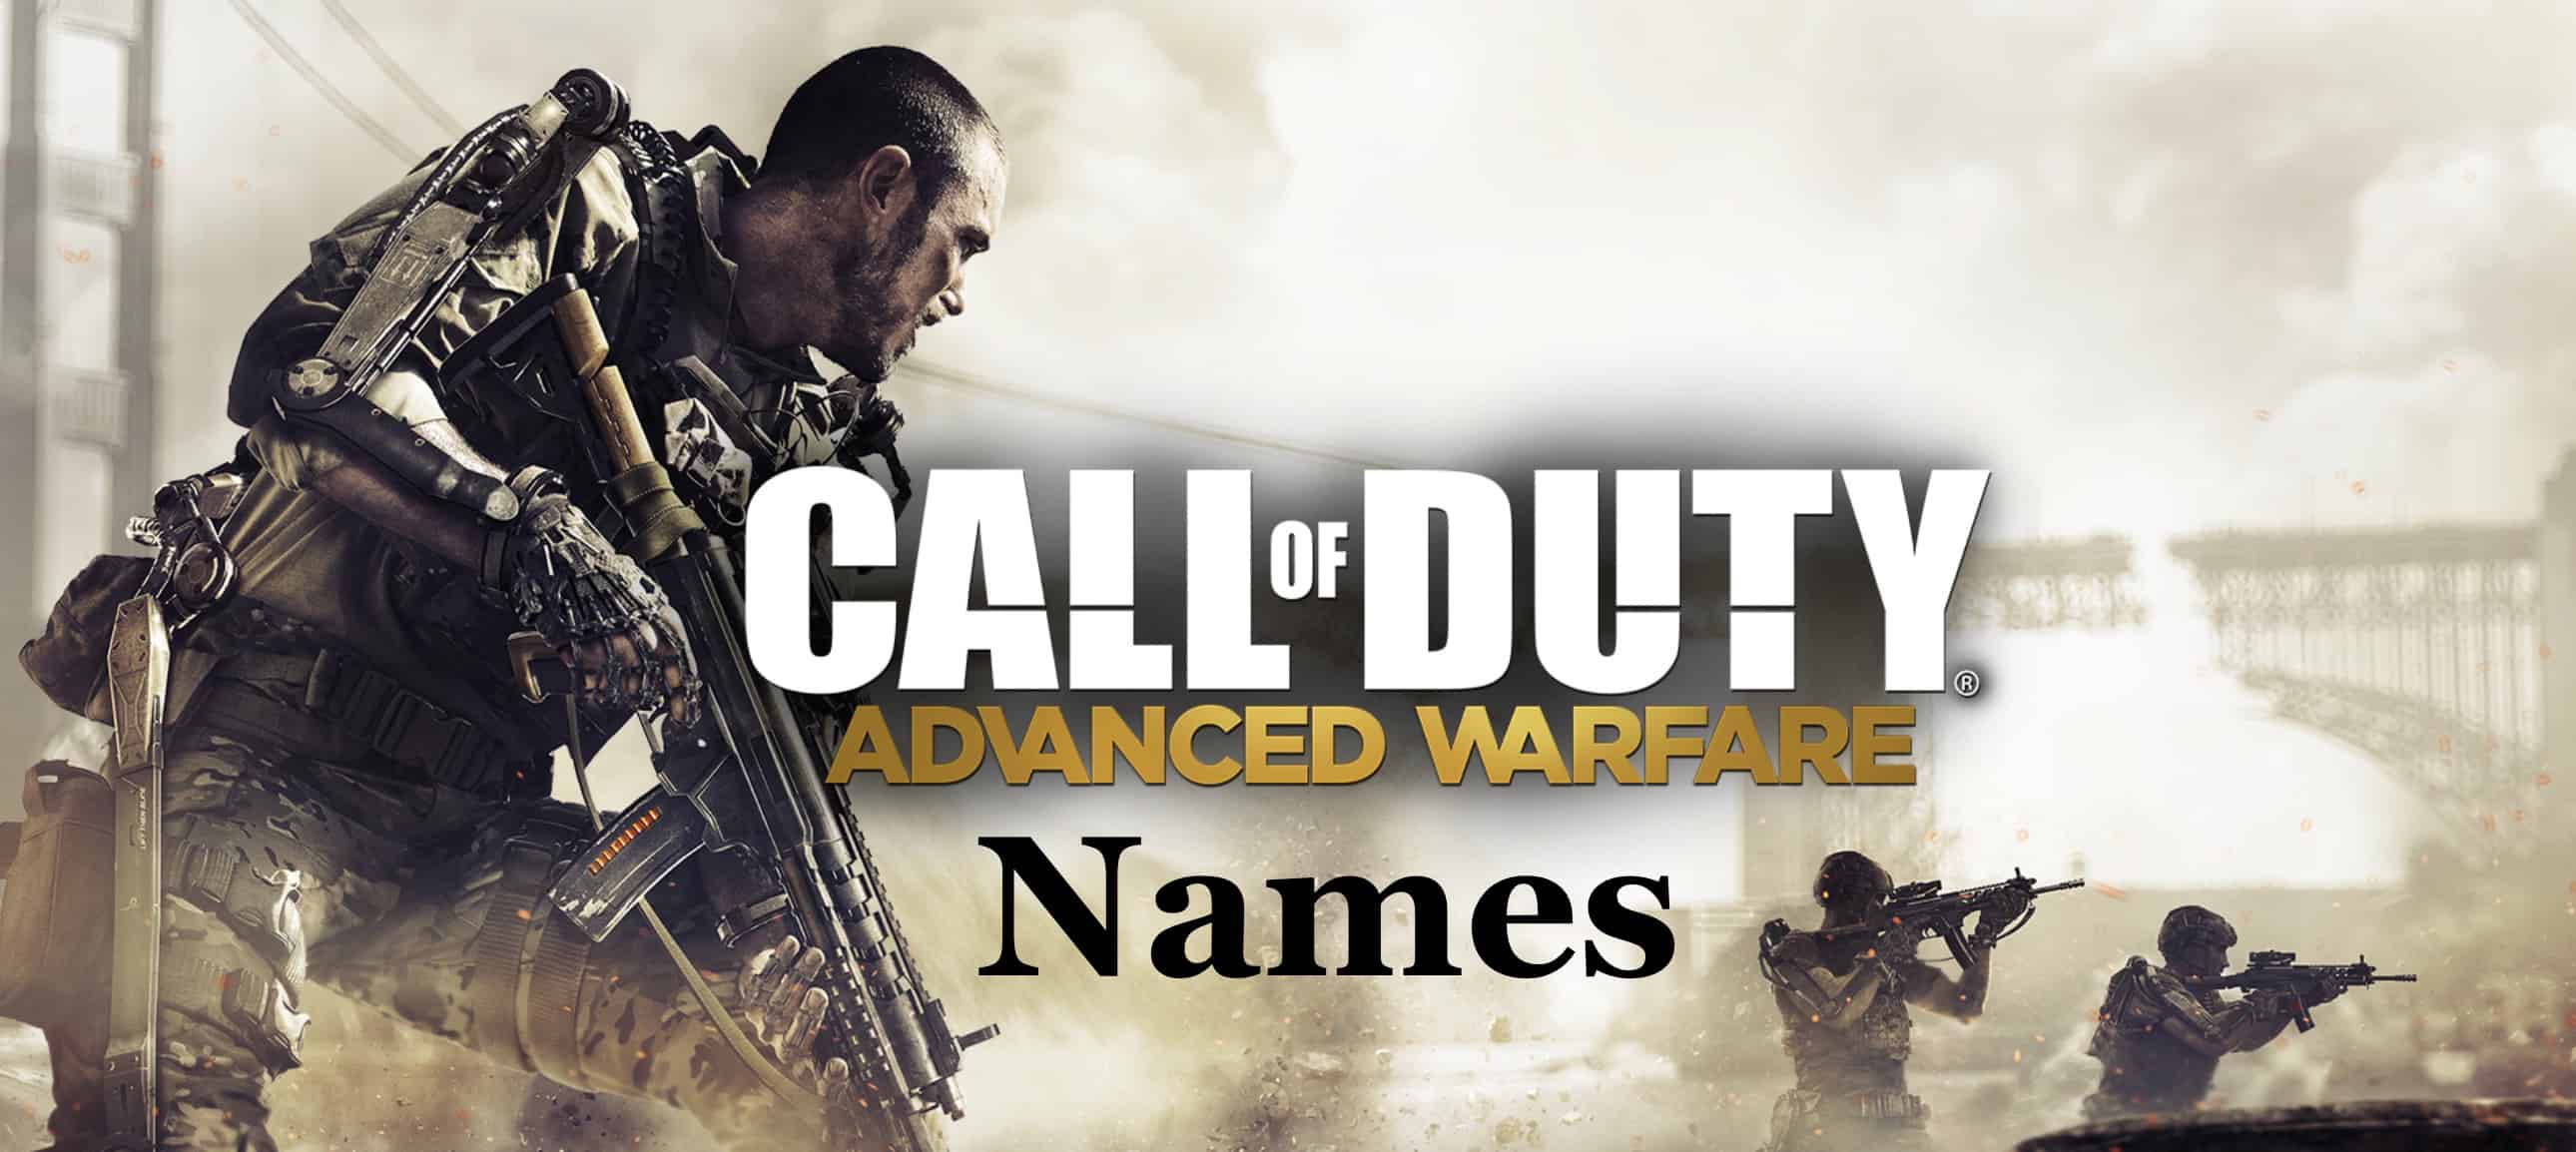 909 Cool Clan Names For Cod And Coc 2020 Appamatix All About Apps